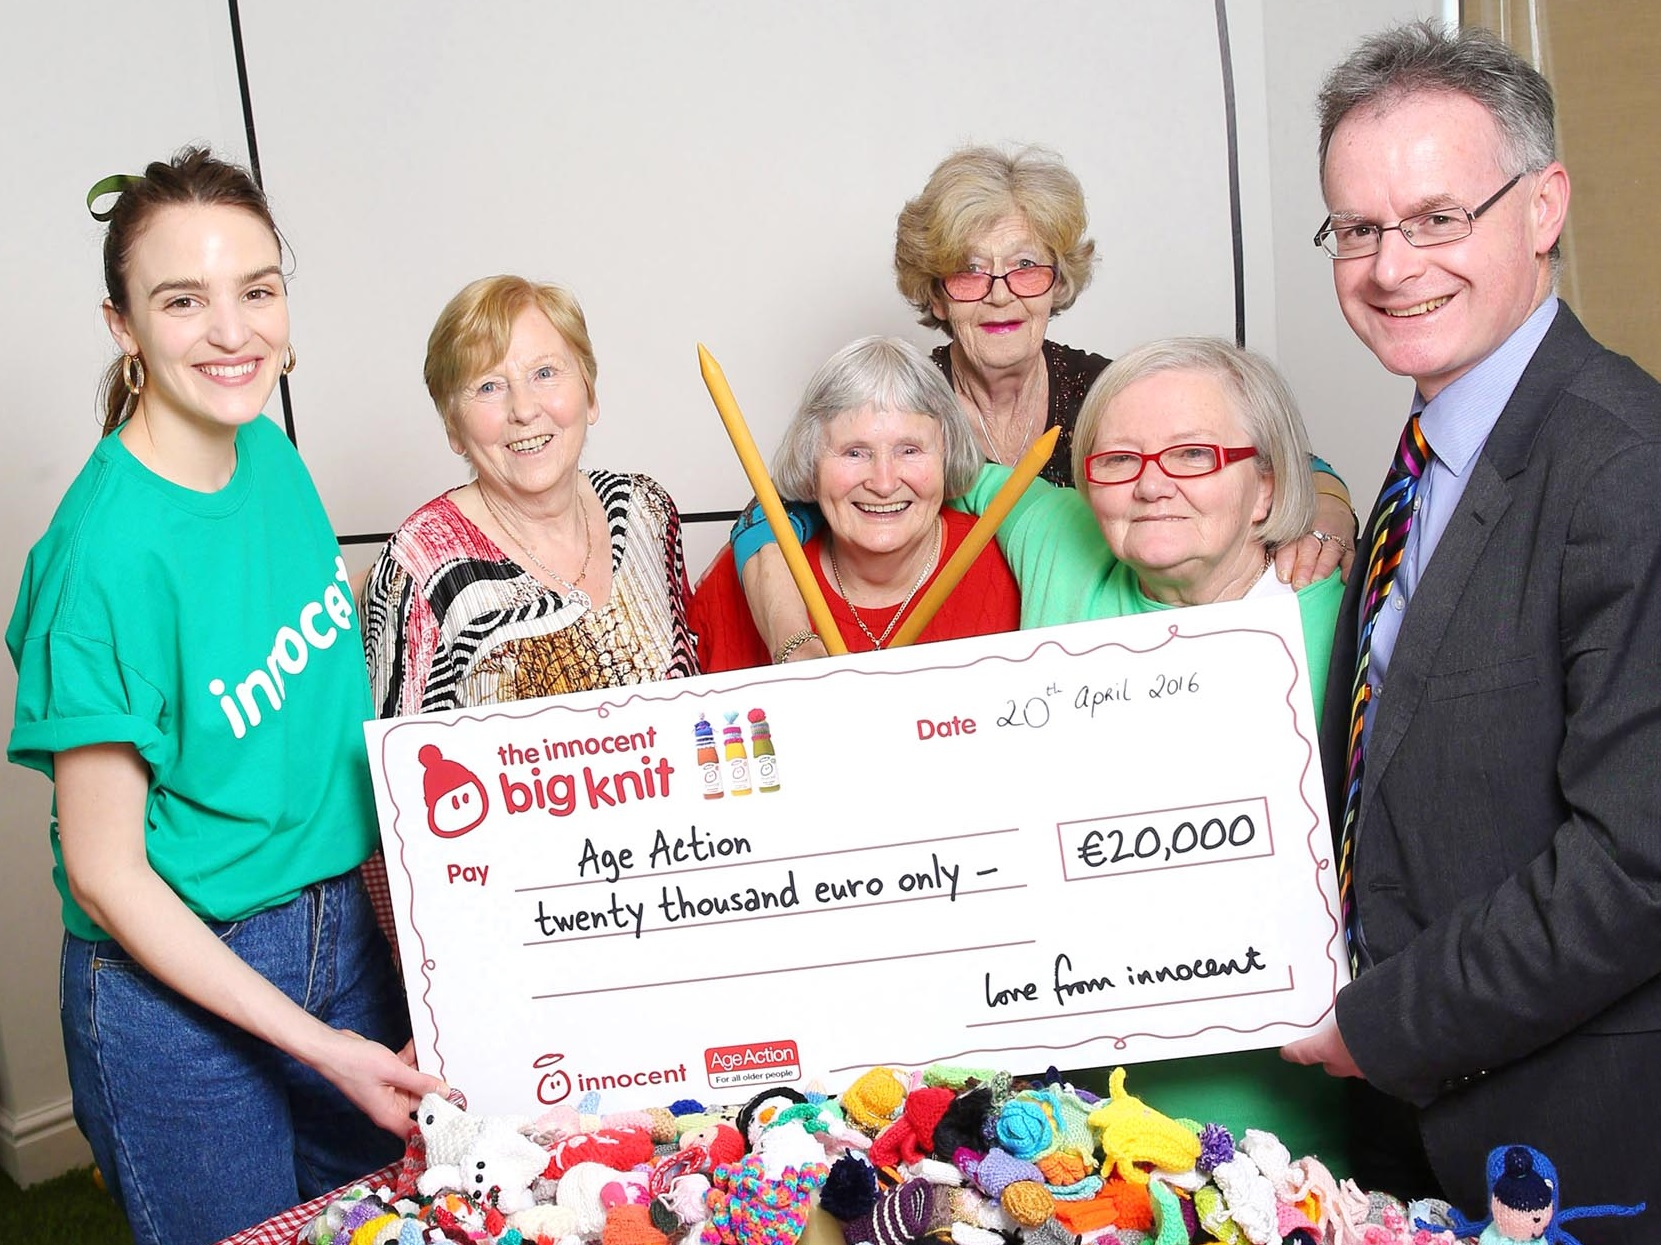 Star knitters Delo, Noirín, Ann and Winnie accept innocent Ireland's donation of €20,000 to Age Action as part of the annual Big Knit campaign.